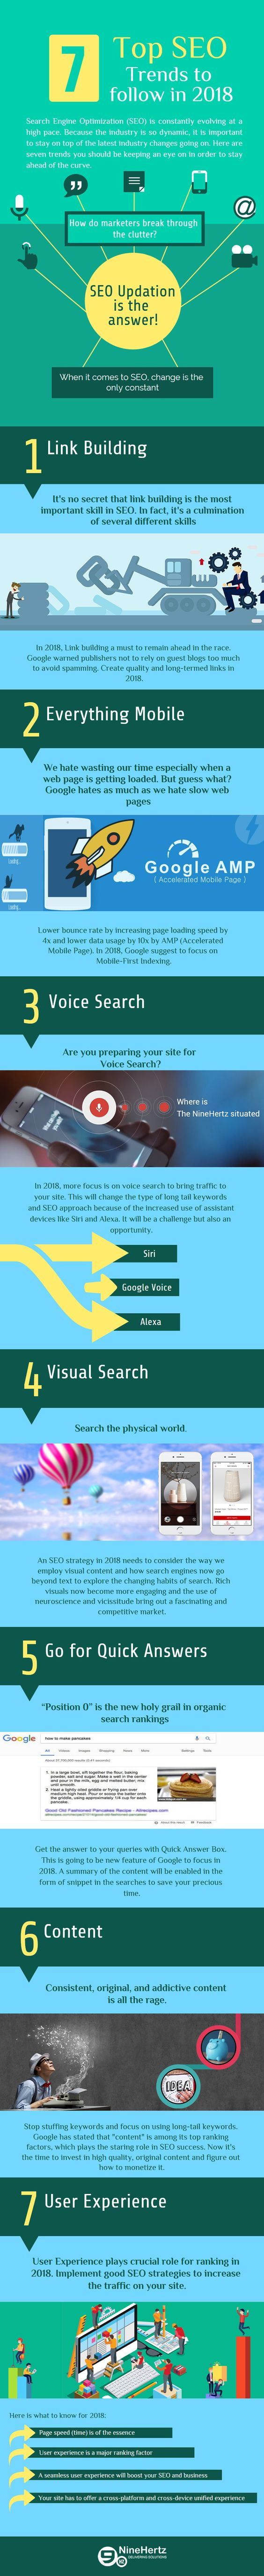 SEO Marketing Infographic